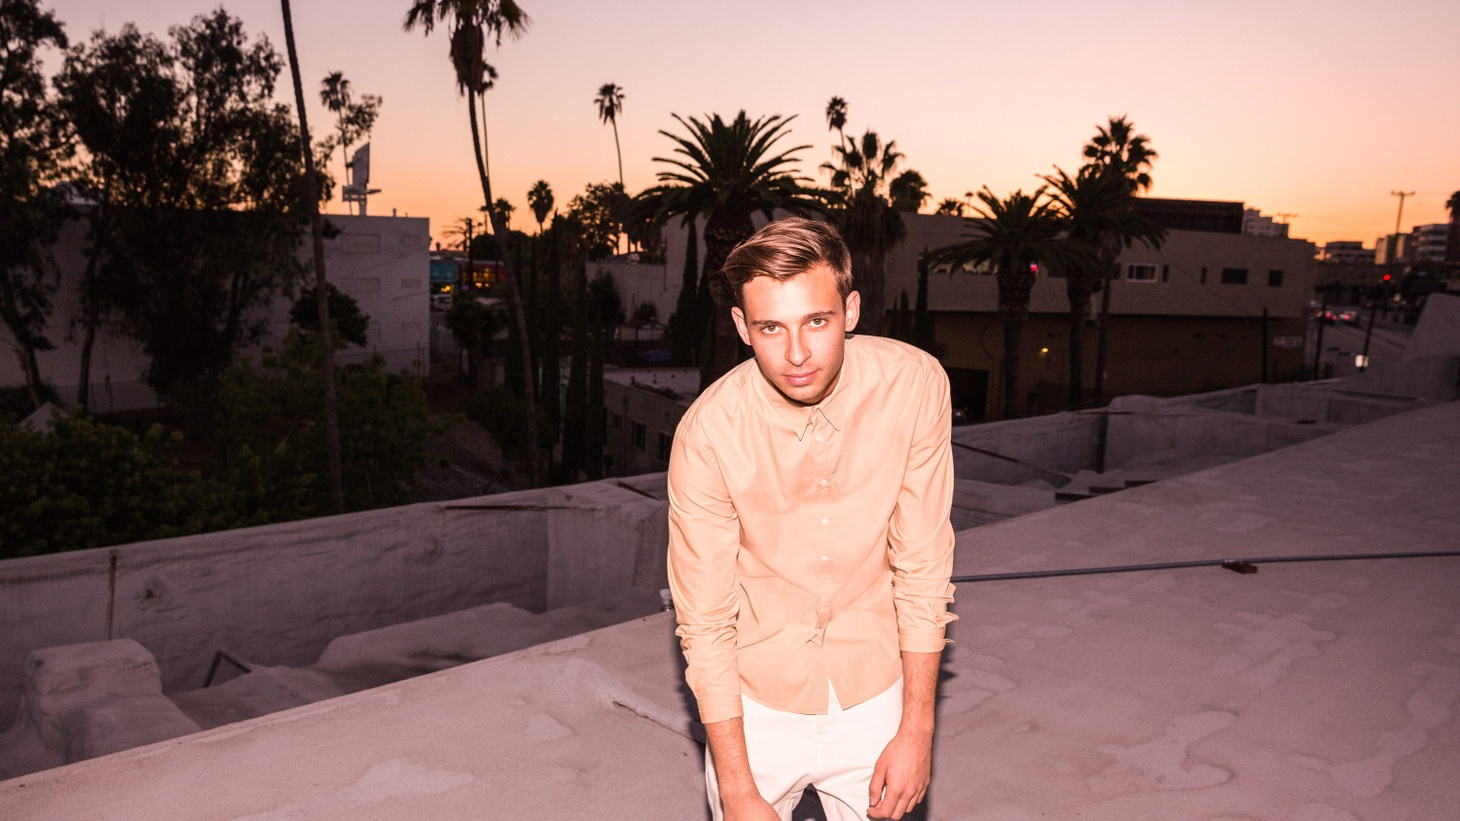 Acclaimed Australian musician Flume has a new album with some of our favorite artists on it.